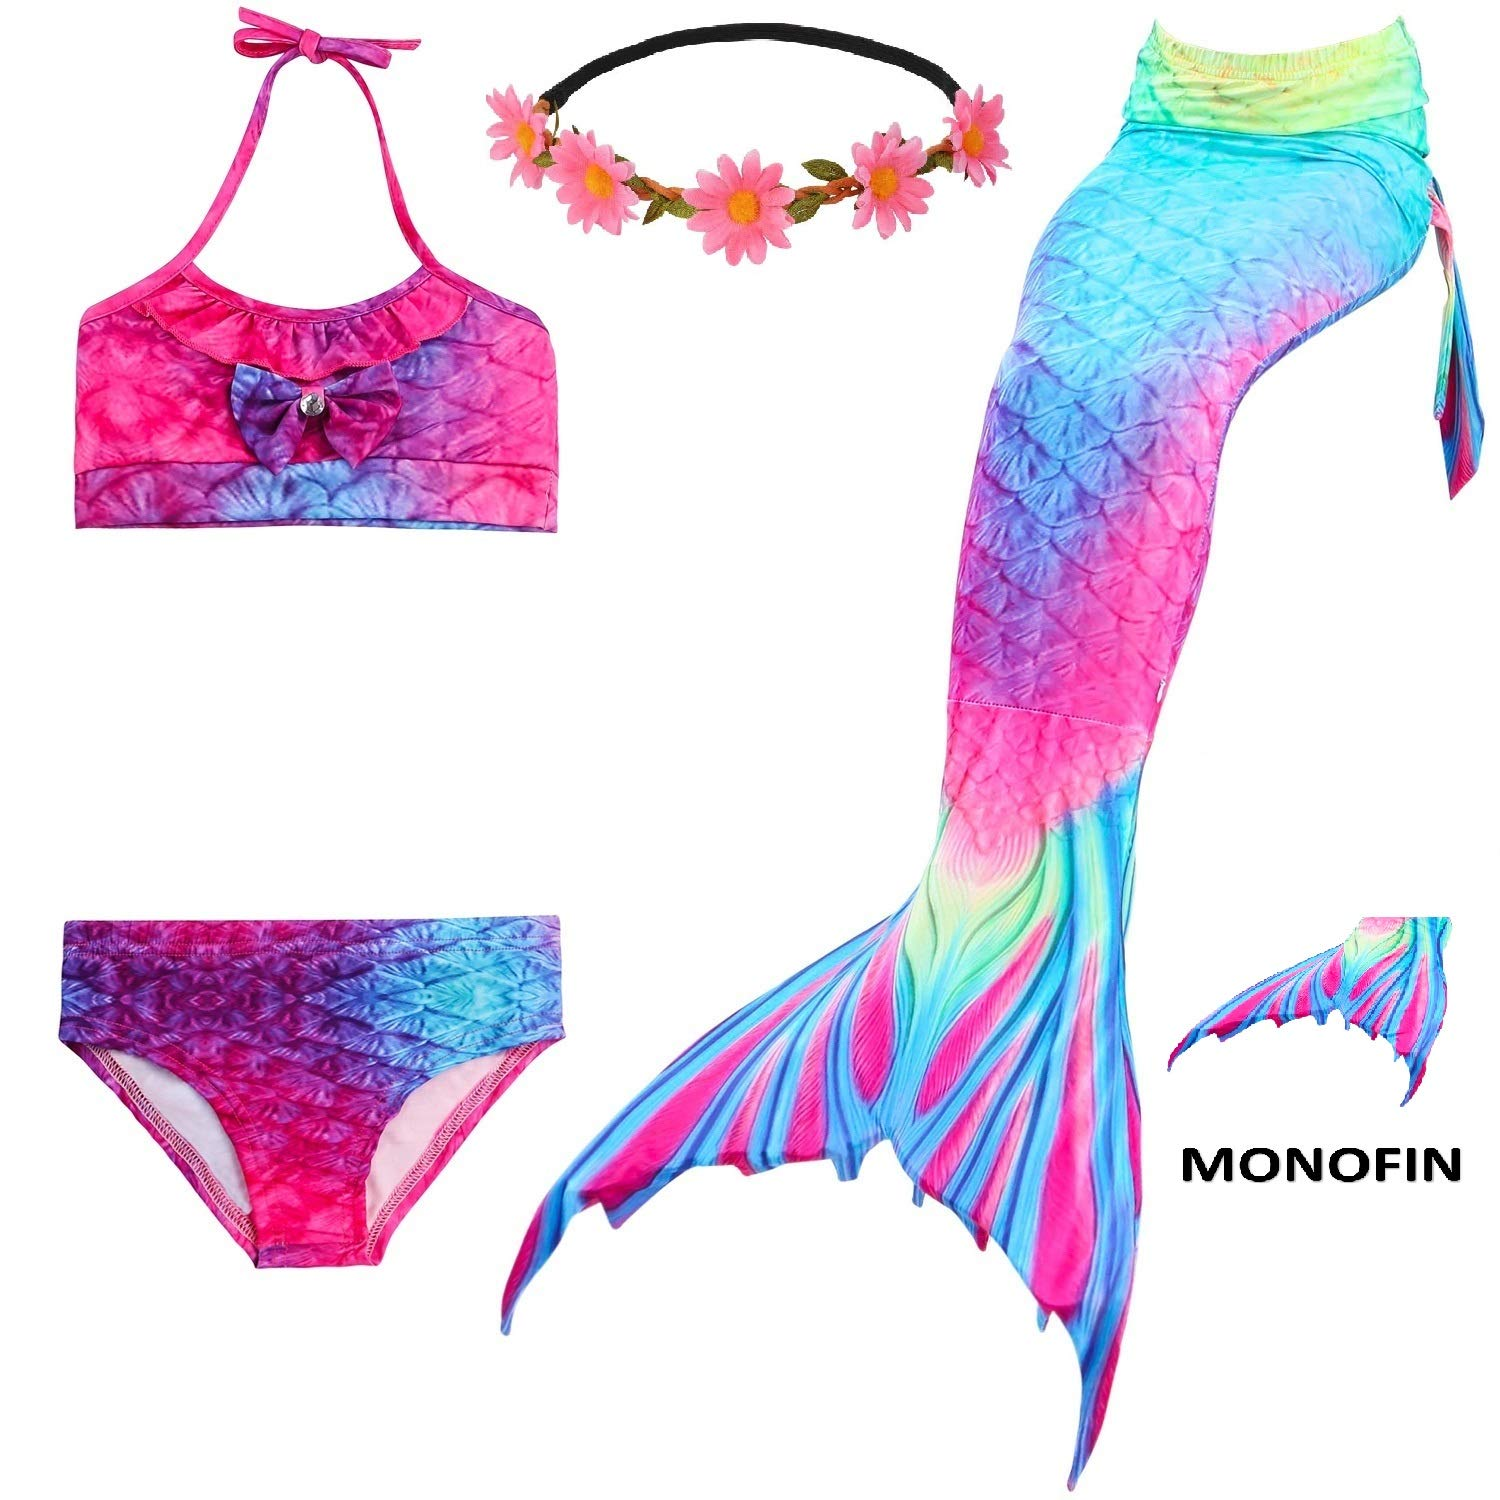 5 Piece Mermaid Tail Swimsuit with Removable Fin Included Monofin and Flower Headband, Wet/Dry Outfit for Kids and Teens (120(5-6Y), A-Aurora)